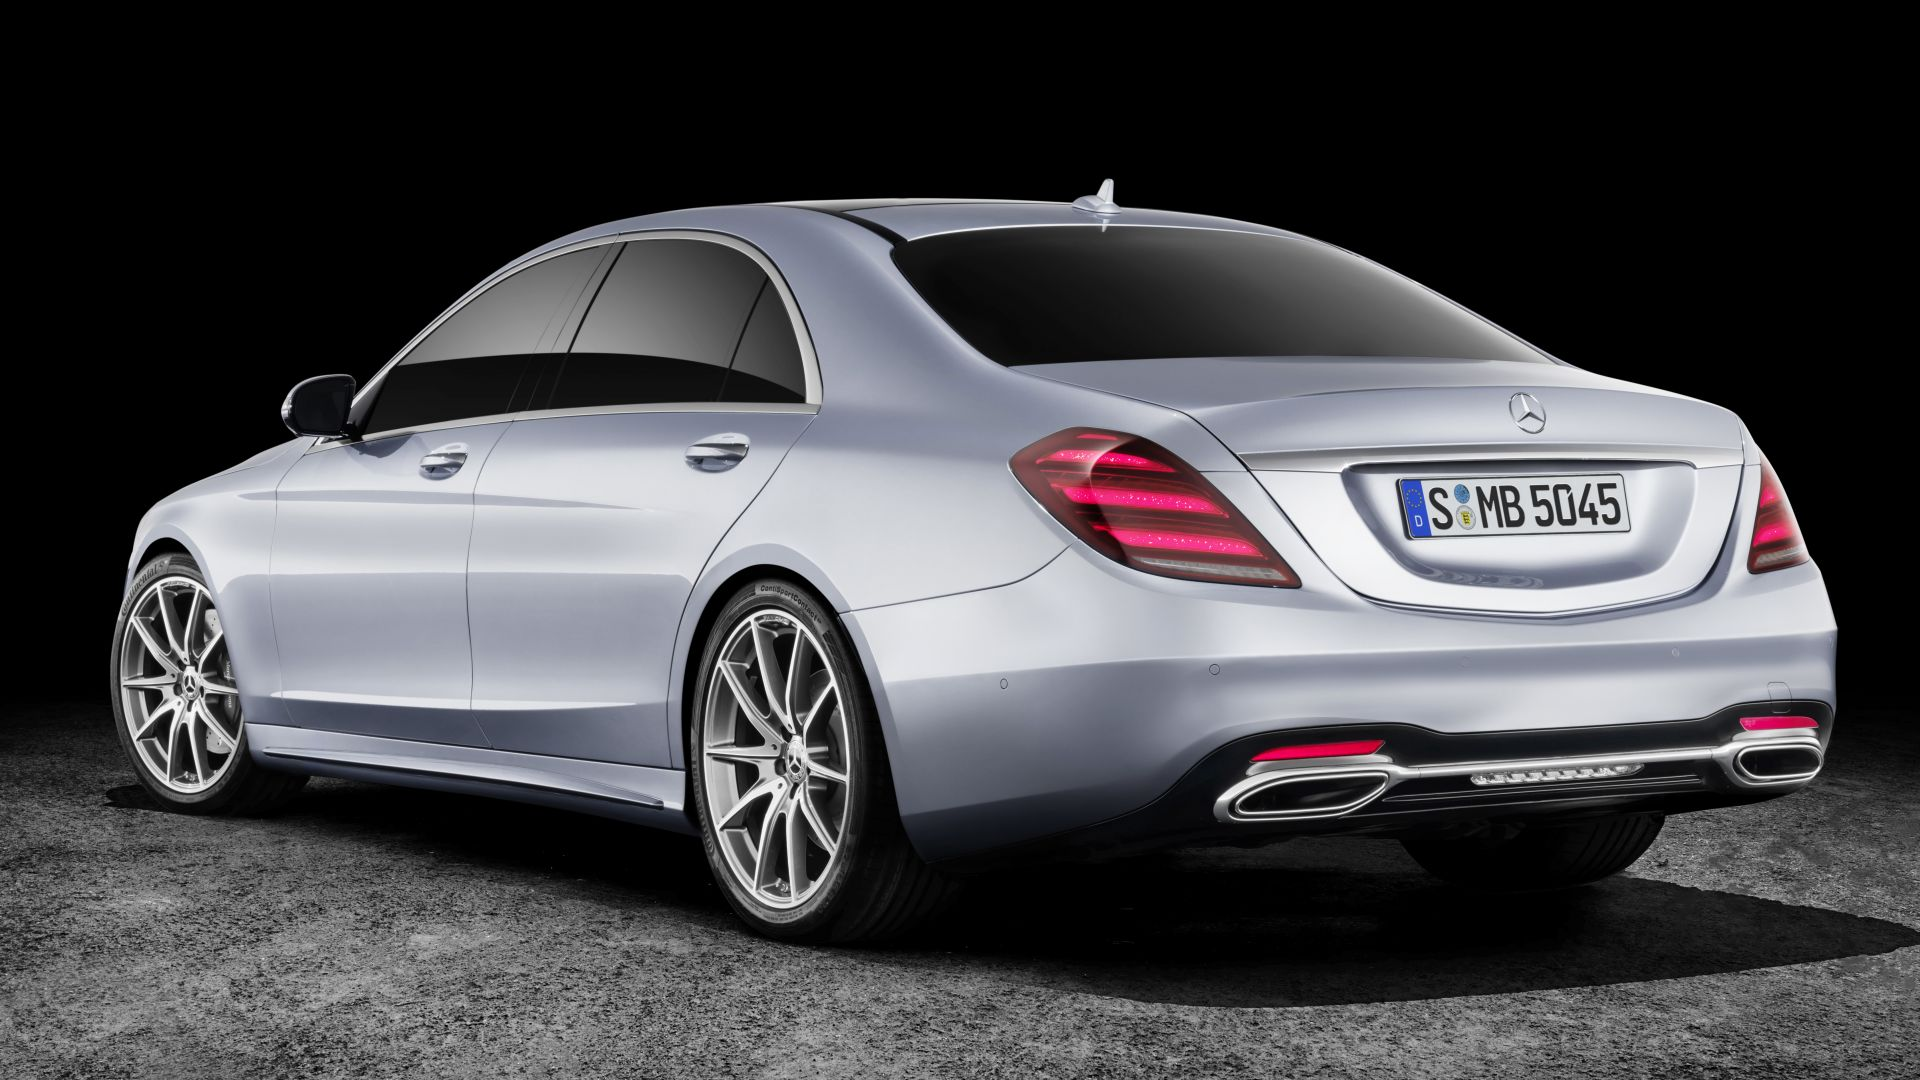 Mercedes-Benz W222 S-Class Facelift, 2018 Cars, 4K, 7K (horizontal)